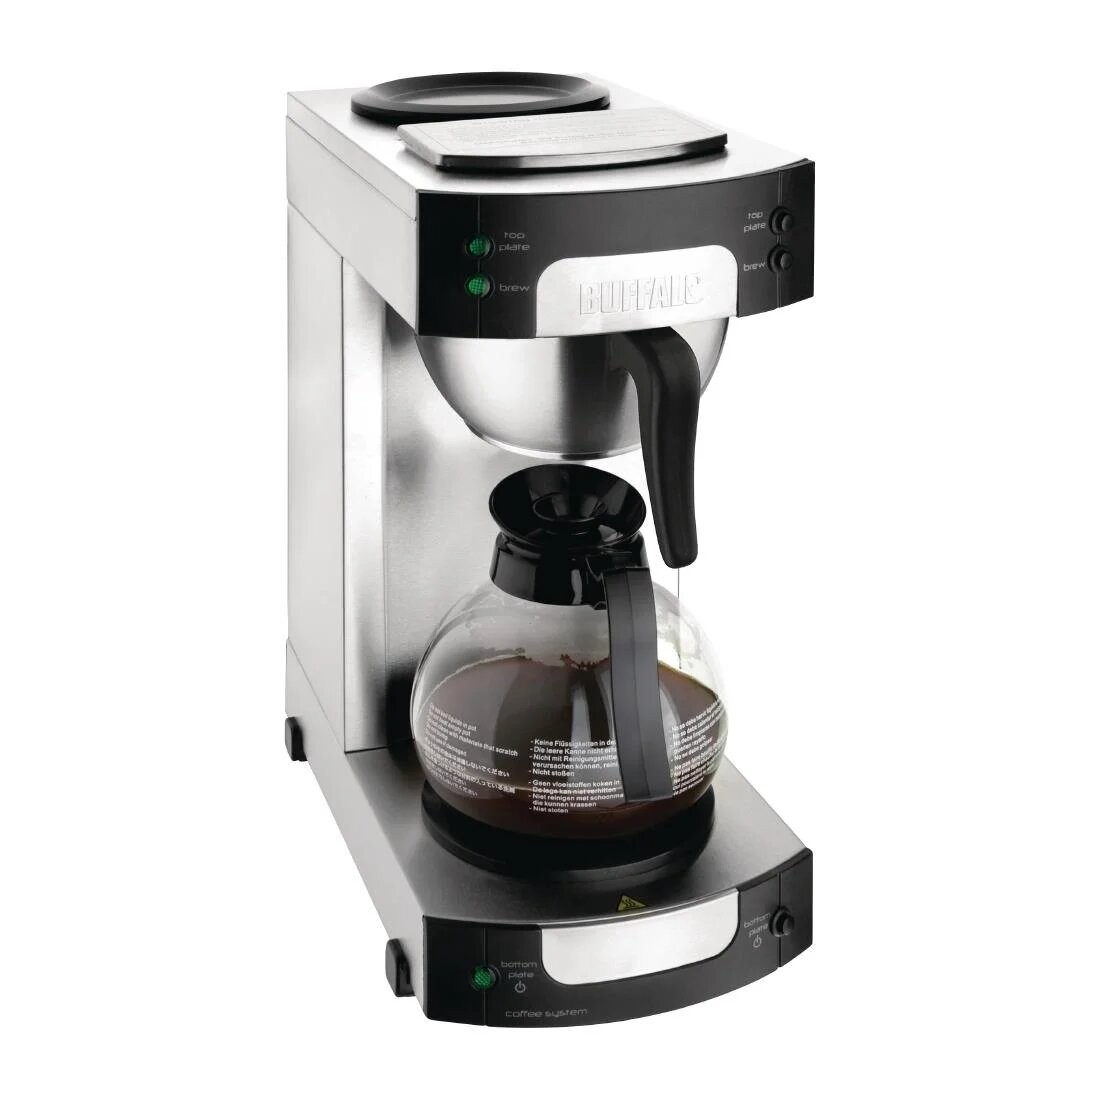 Buffalo CW305 Filter Coffee Maker